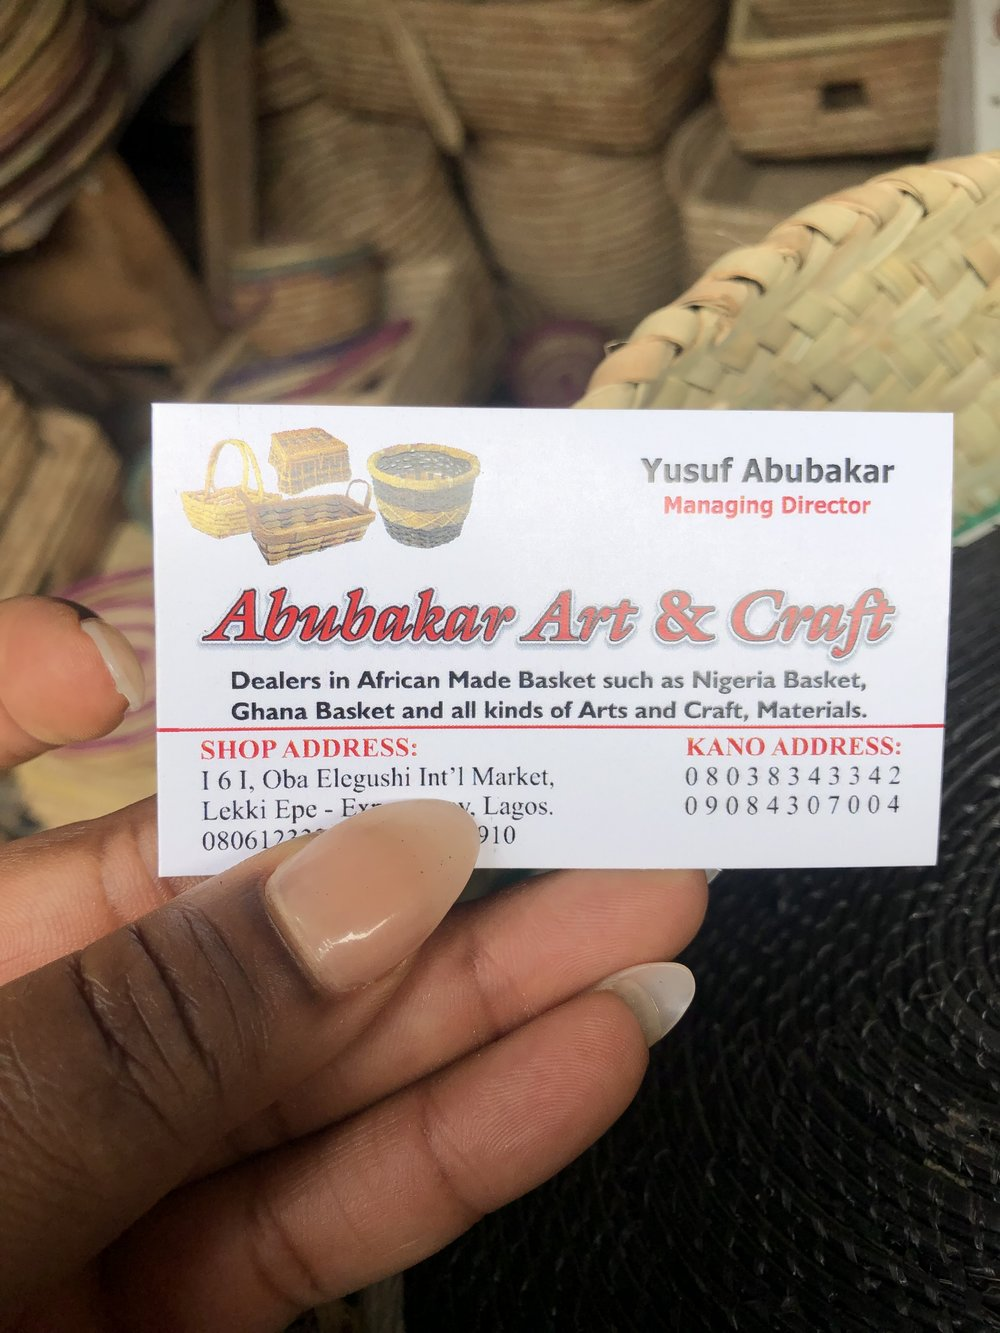 - If you are ever in Lagos, Nigeria, look him up and tell him I sent you.